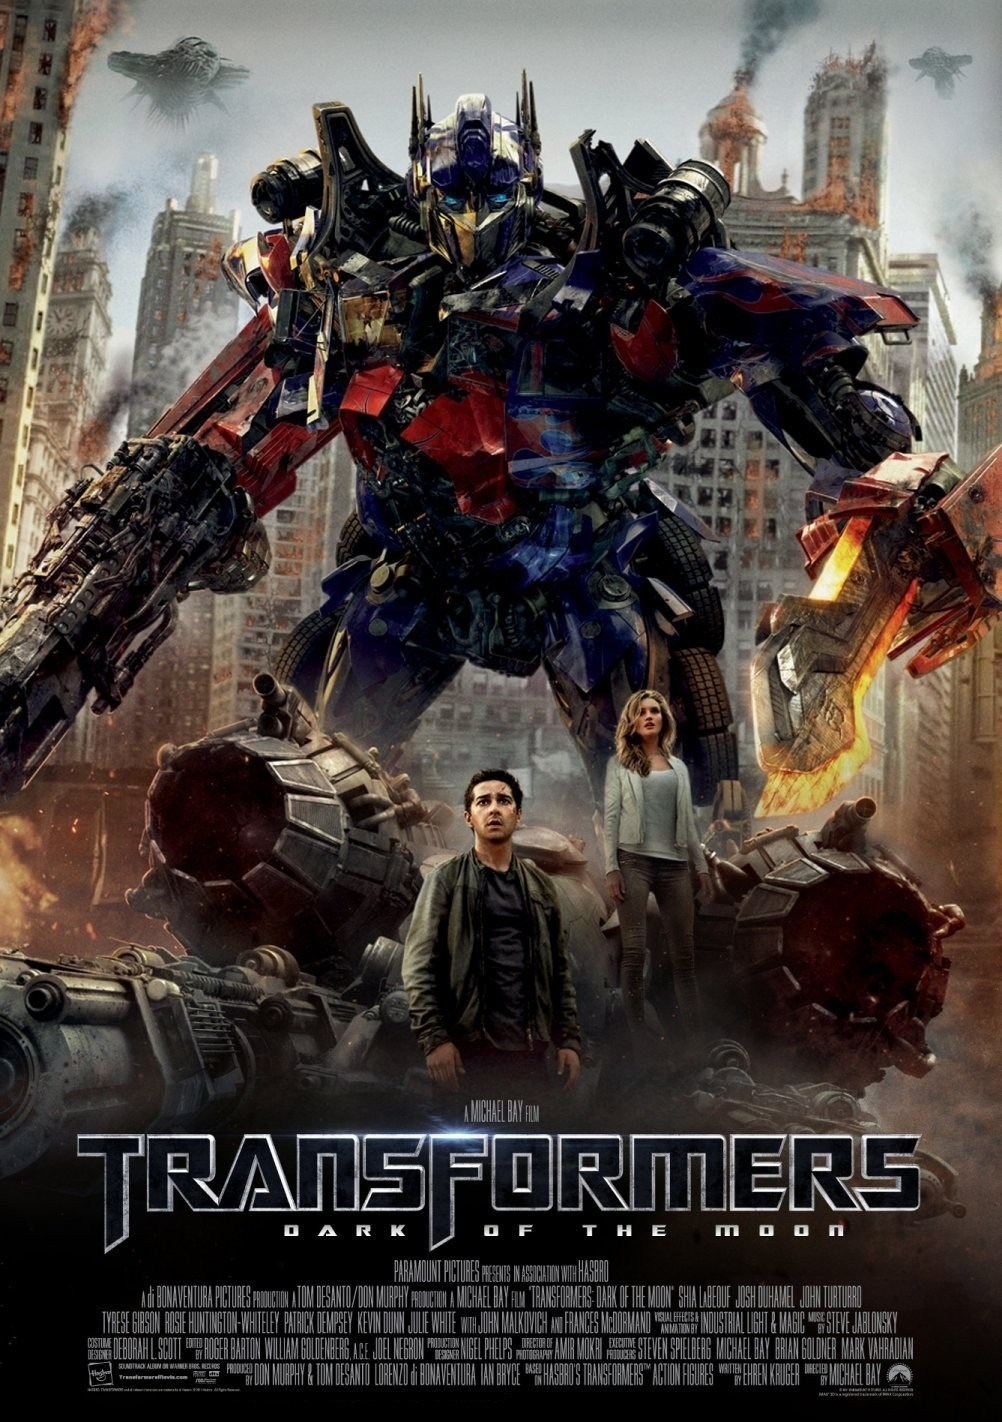 subscene - transformers: dark of the moon indonesian subtitle